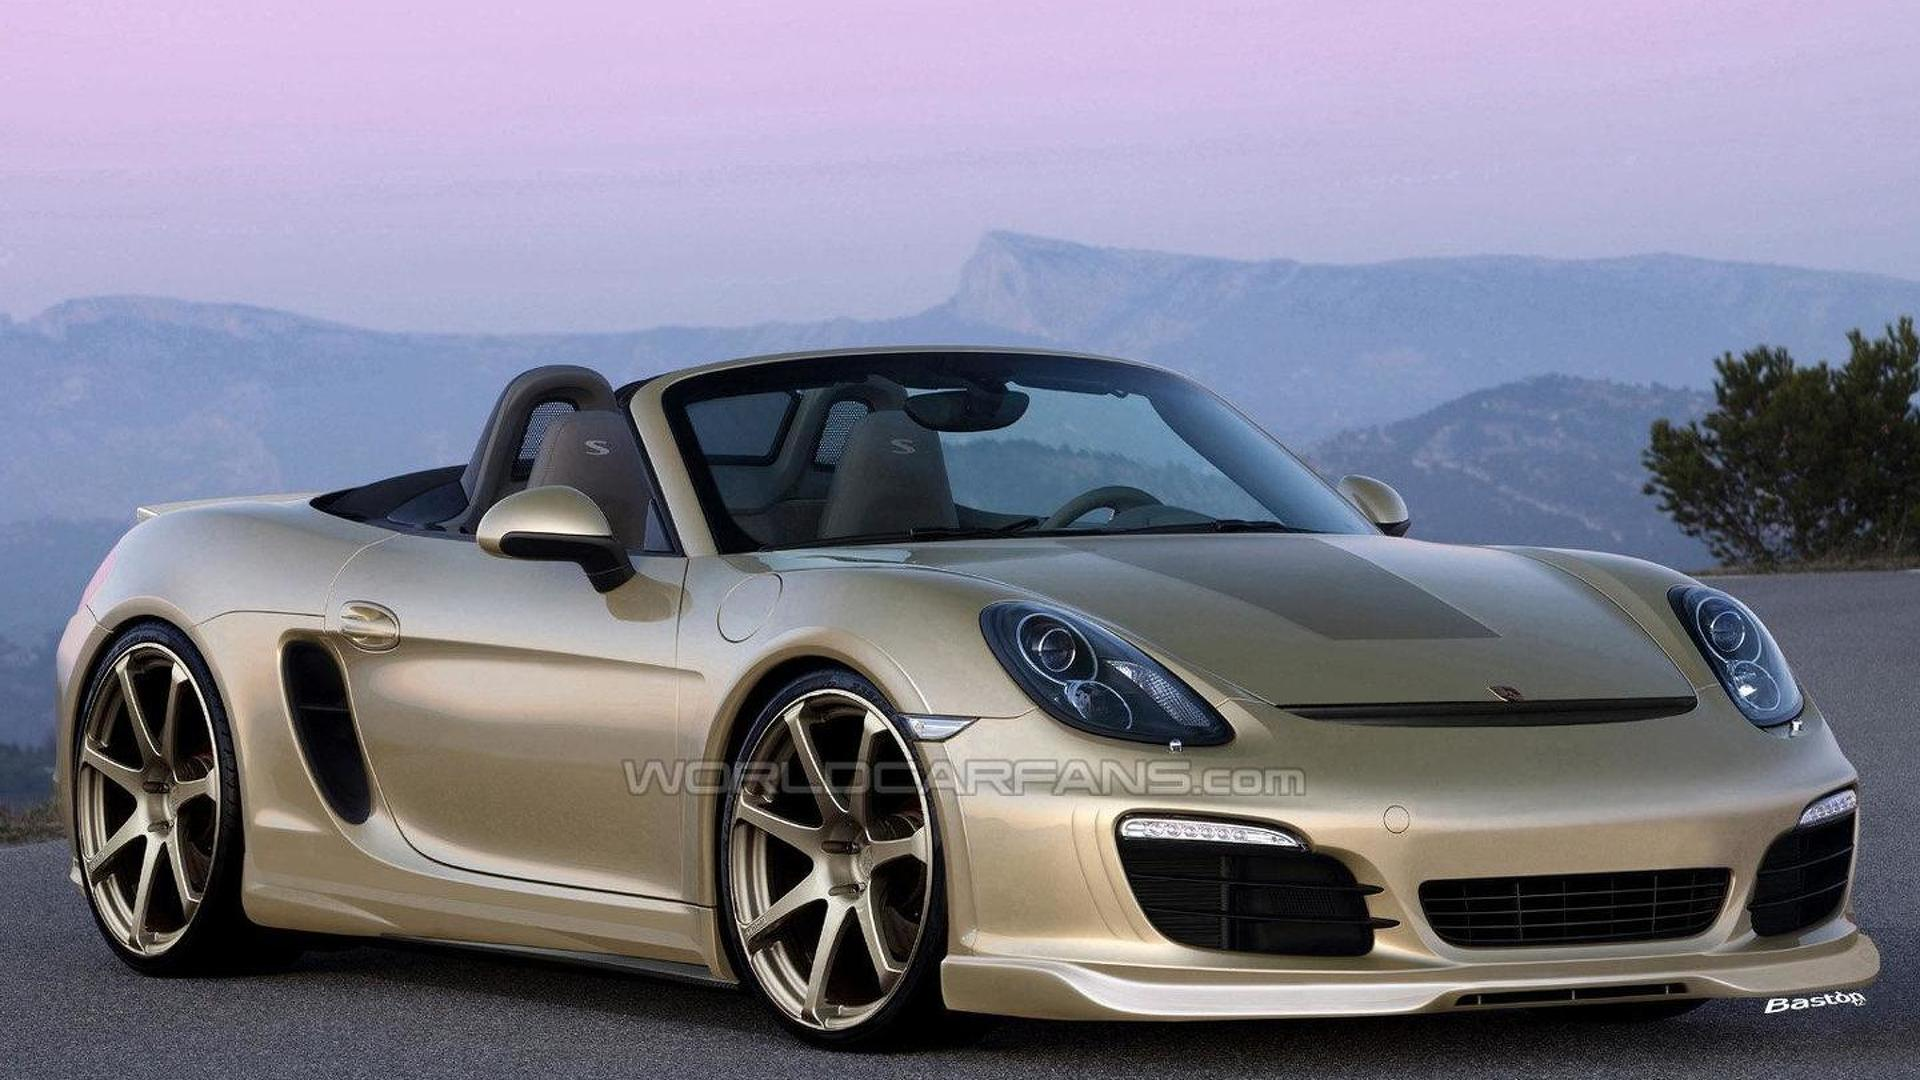 Turbos to penetrate Porsche model range - rumors